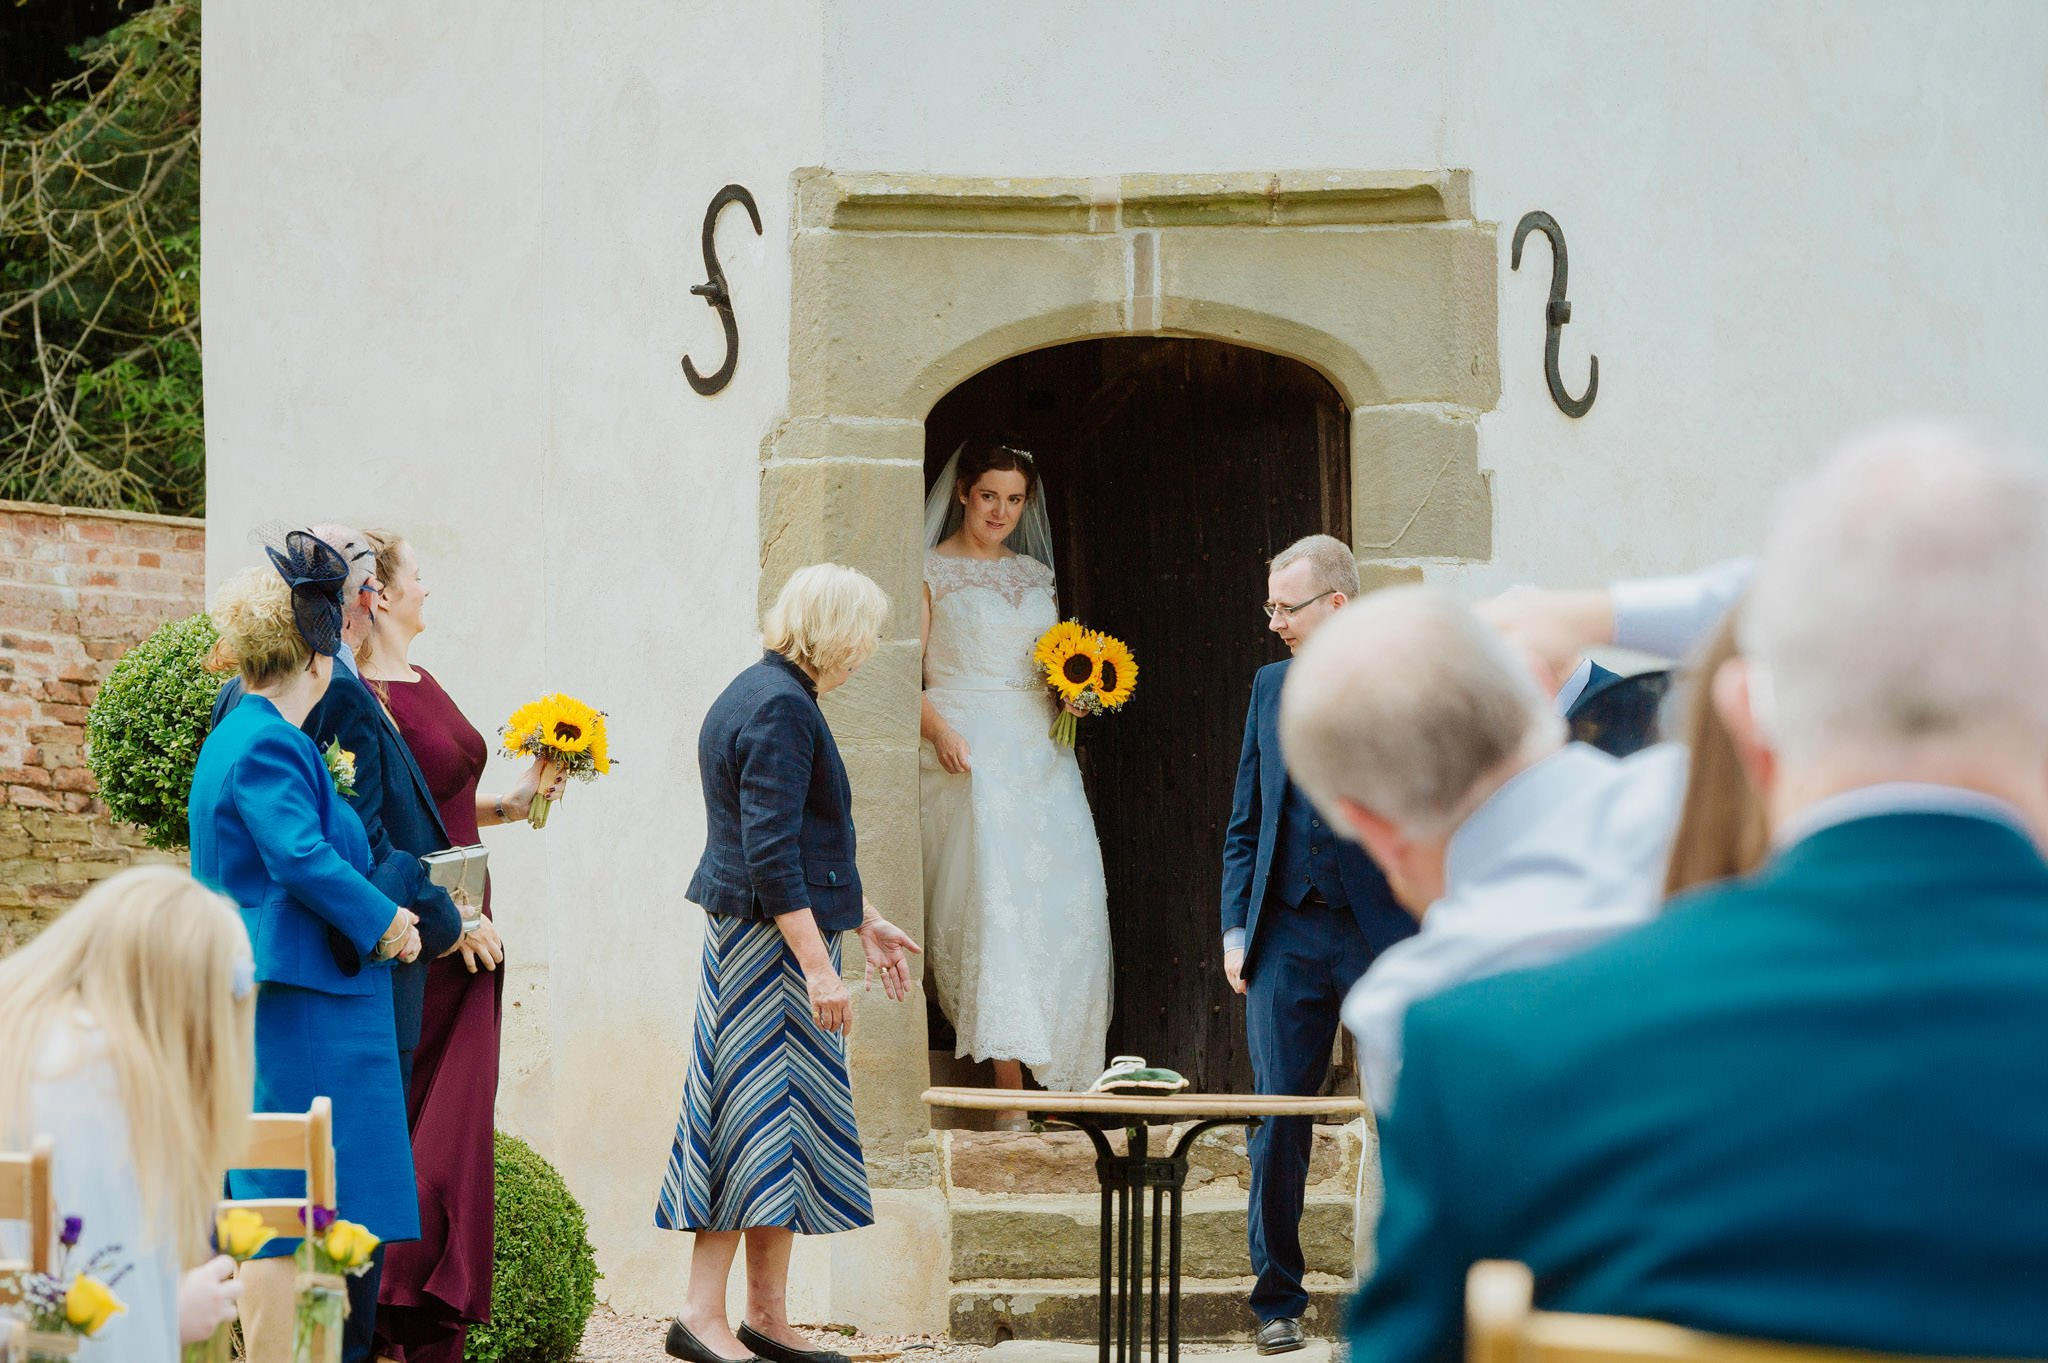 Wedding photography at Homme House in Herefordshire, West Midlands 35